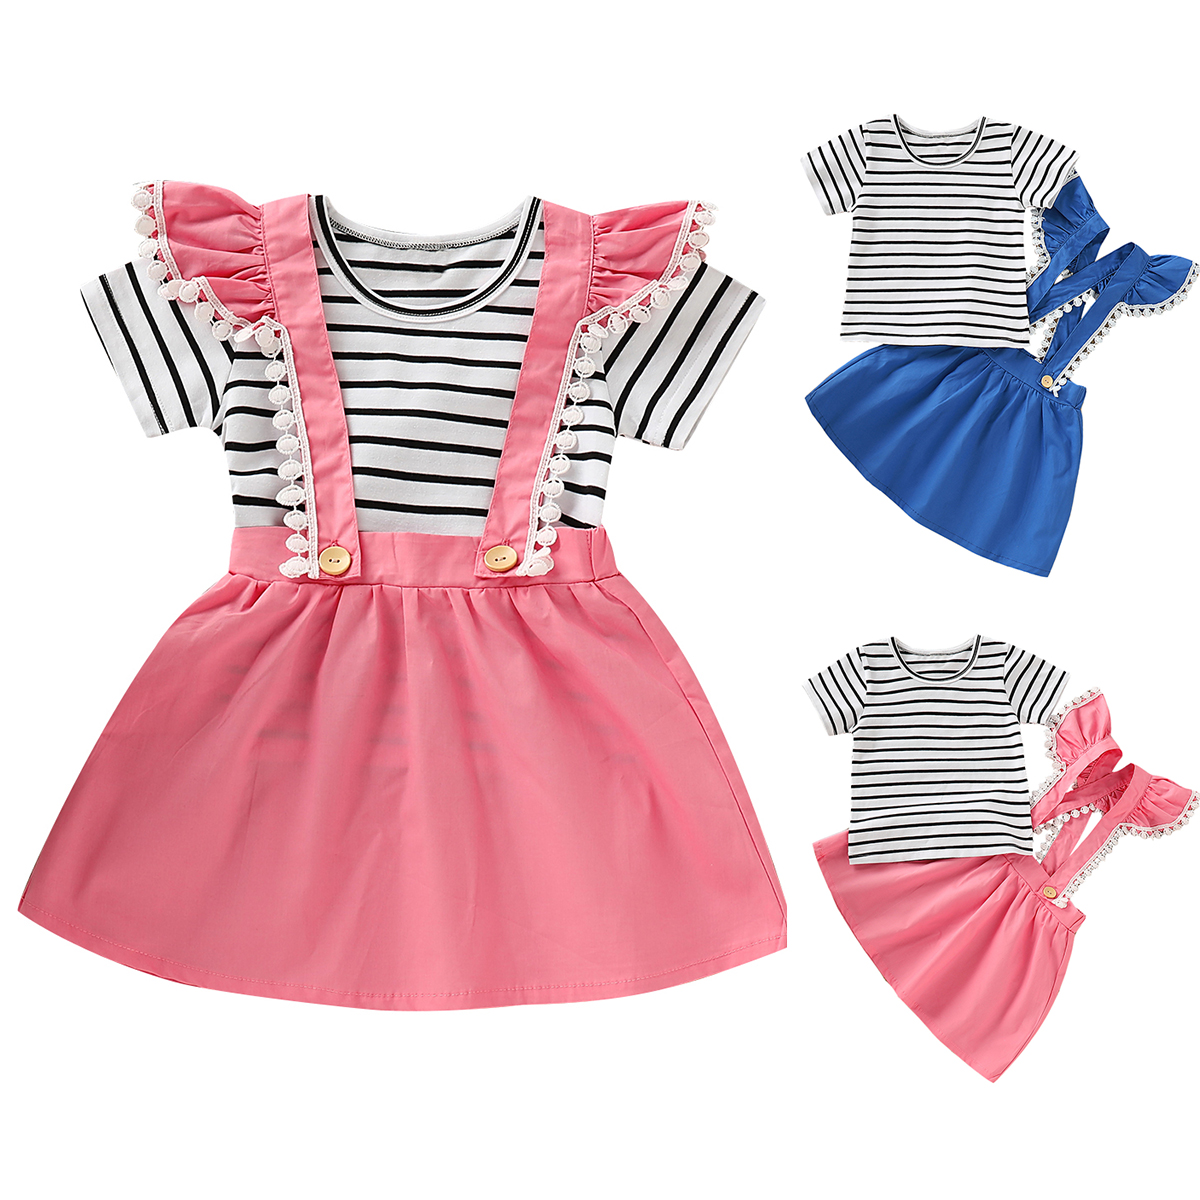 Toddler Baby Girls Clothes Ruffle Striped T Shirt Tops Skirt Dress Outfits Set